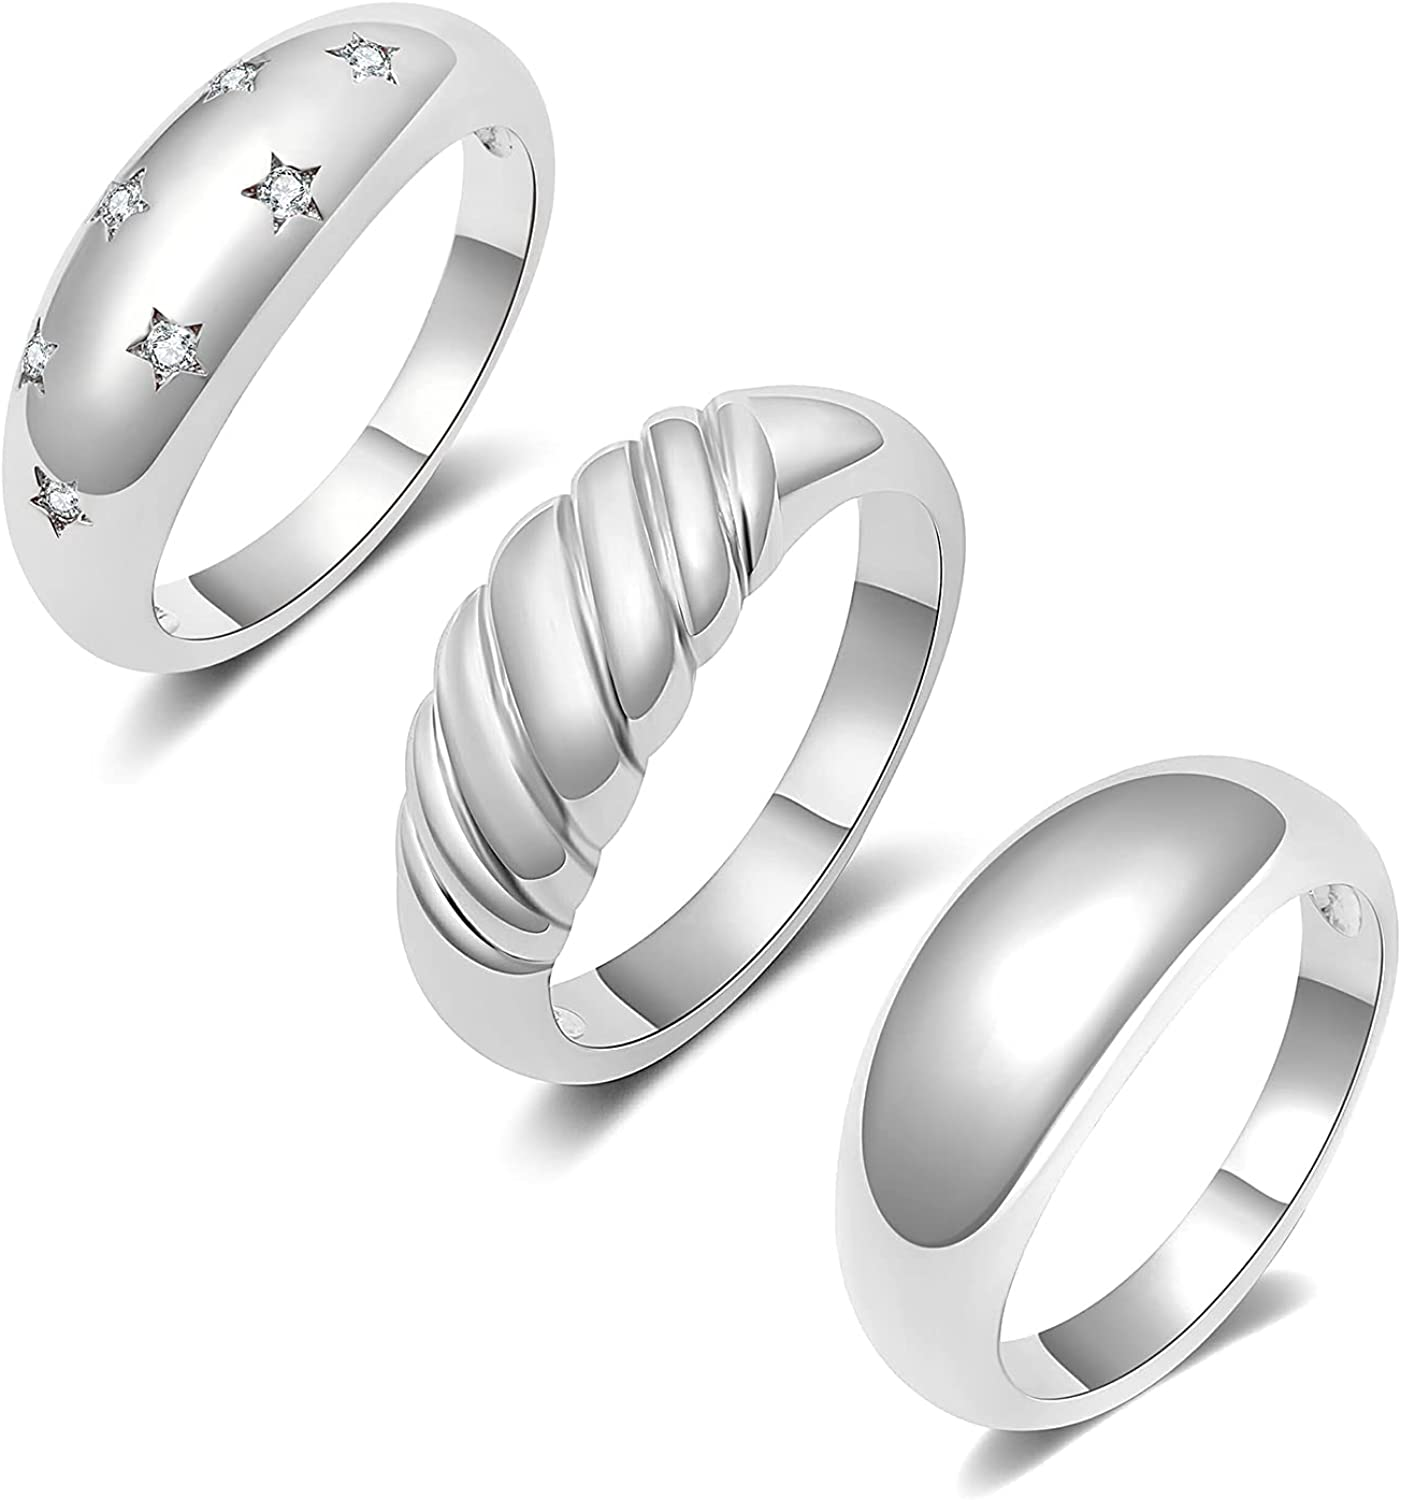 Recommended Gold Chunky Ring Max 74% OFF Set Silver Croissant Dome Star S